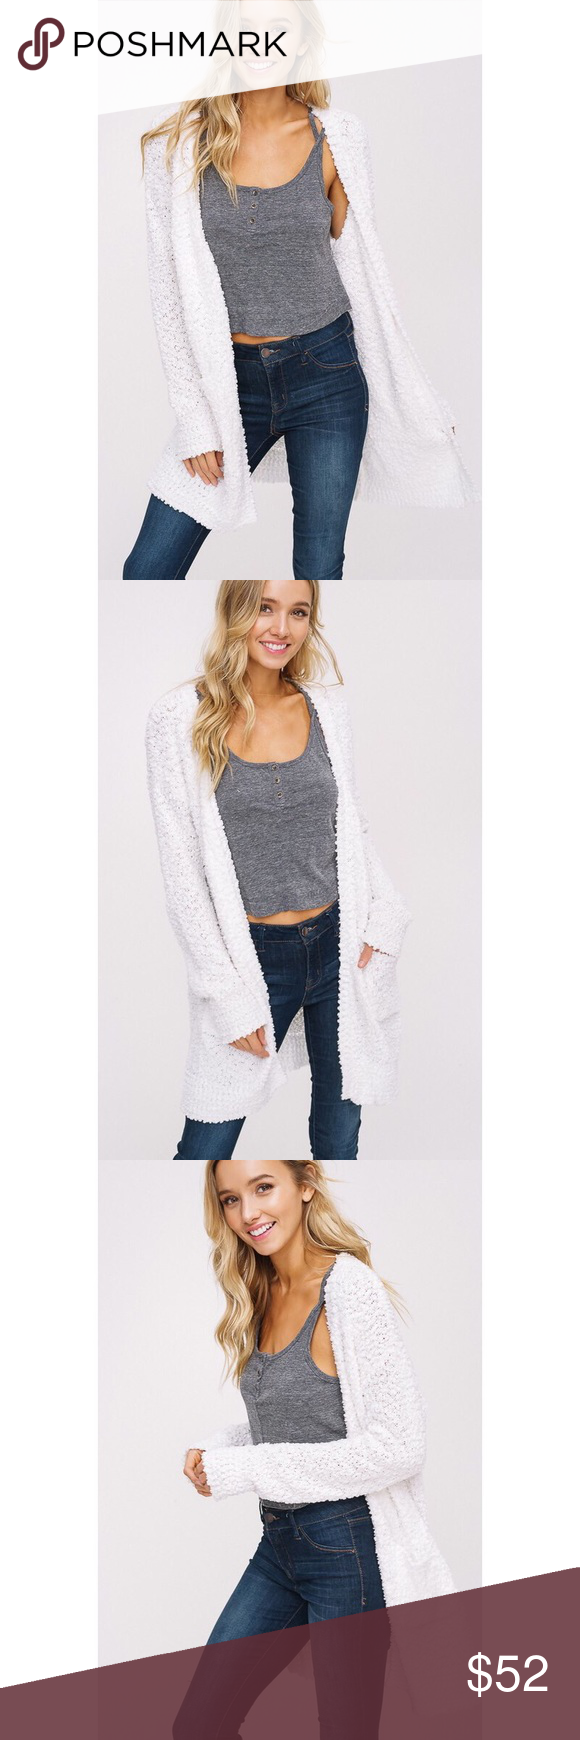 � Polly Popcorn Chunky Cardigan - Ivory You'll never want to take off this dream of a cardigan! Features a soft popcorn texture, drop shoulder with long sleeves, 2 front pockets. 100% Acrylic. ALSO AVAILABLE IN MOCHA AND MAUVE. likeNarly Sweaters Cardigans